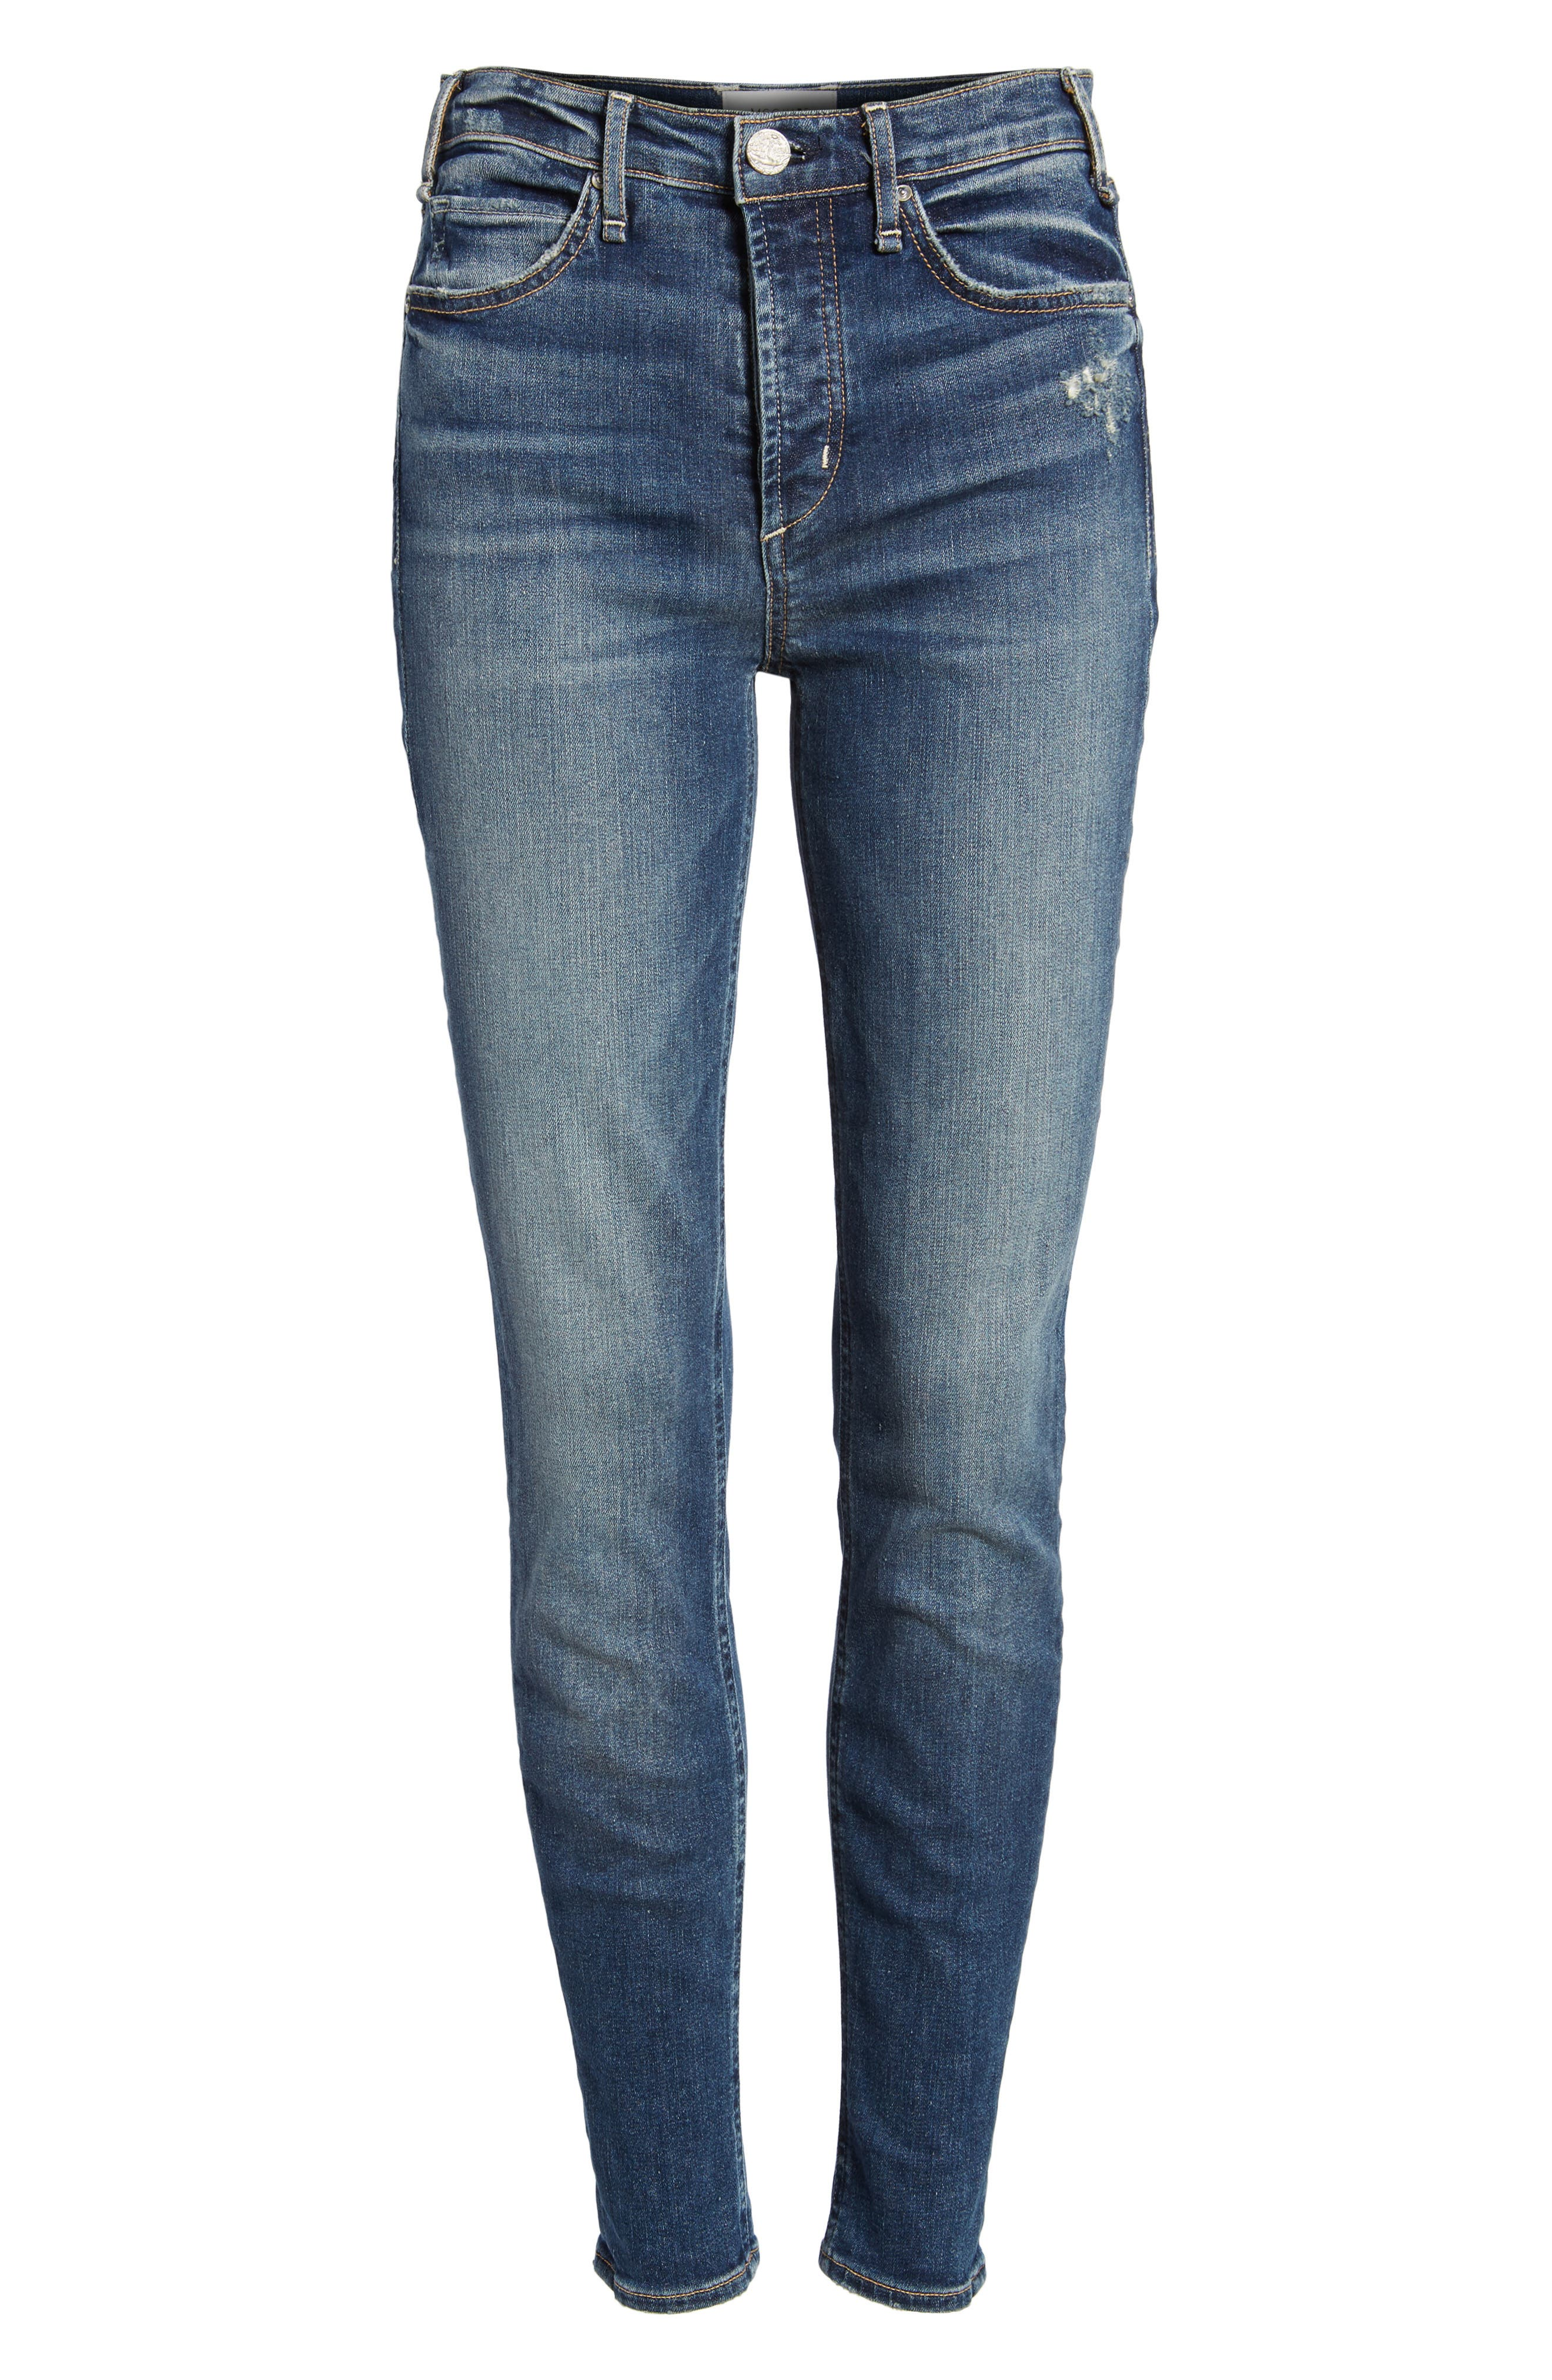 Newton High Rise Skinny Jeans,                             Alternate thumbnail 7, color,                             Sampaio